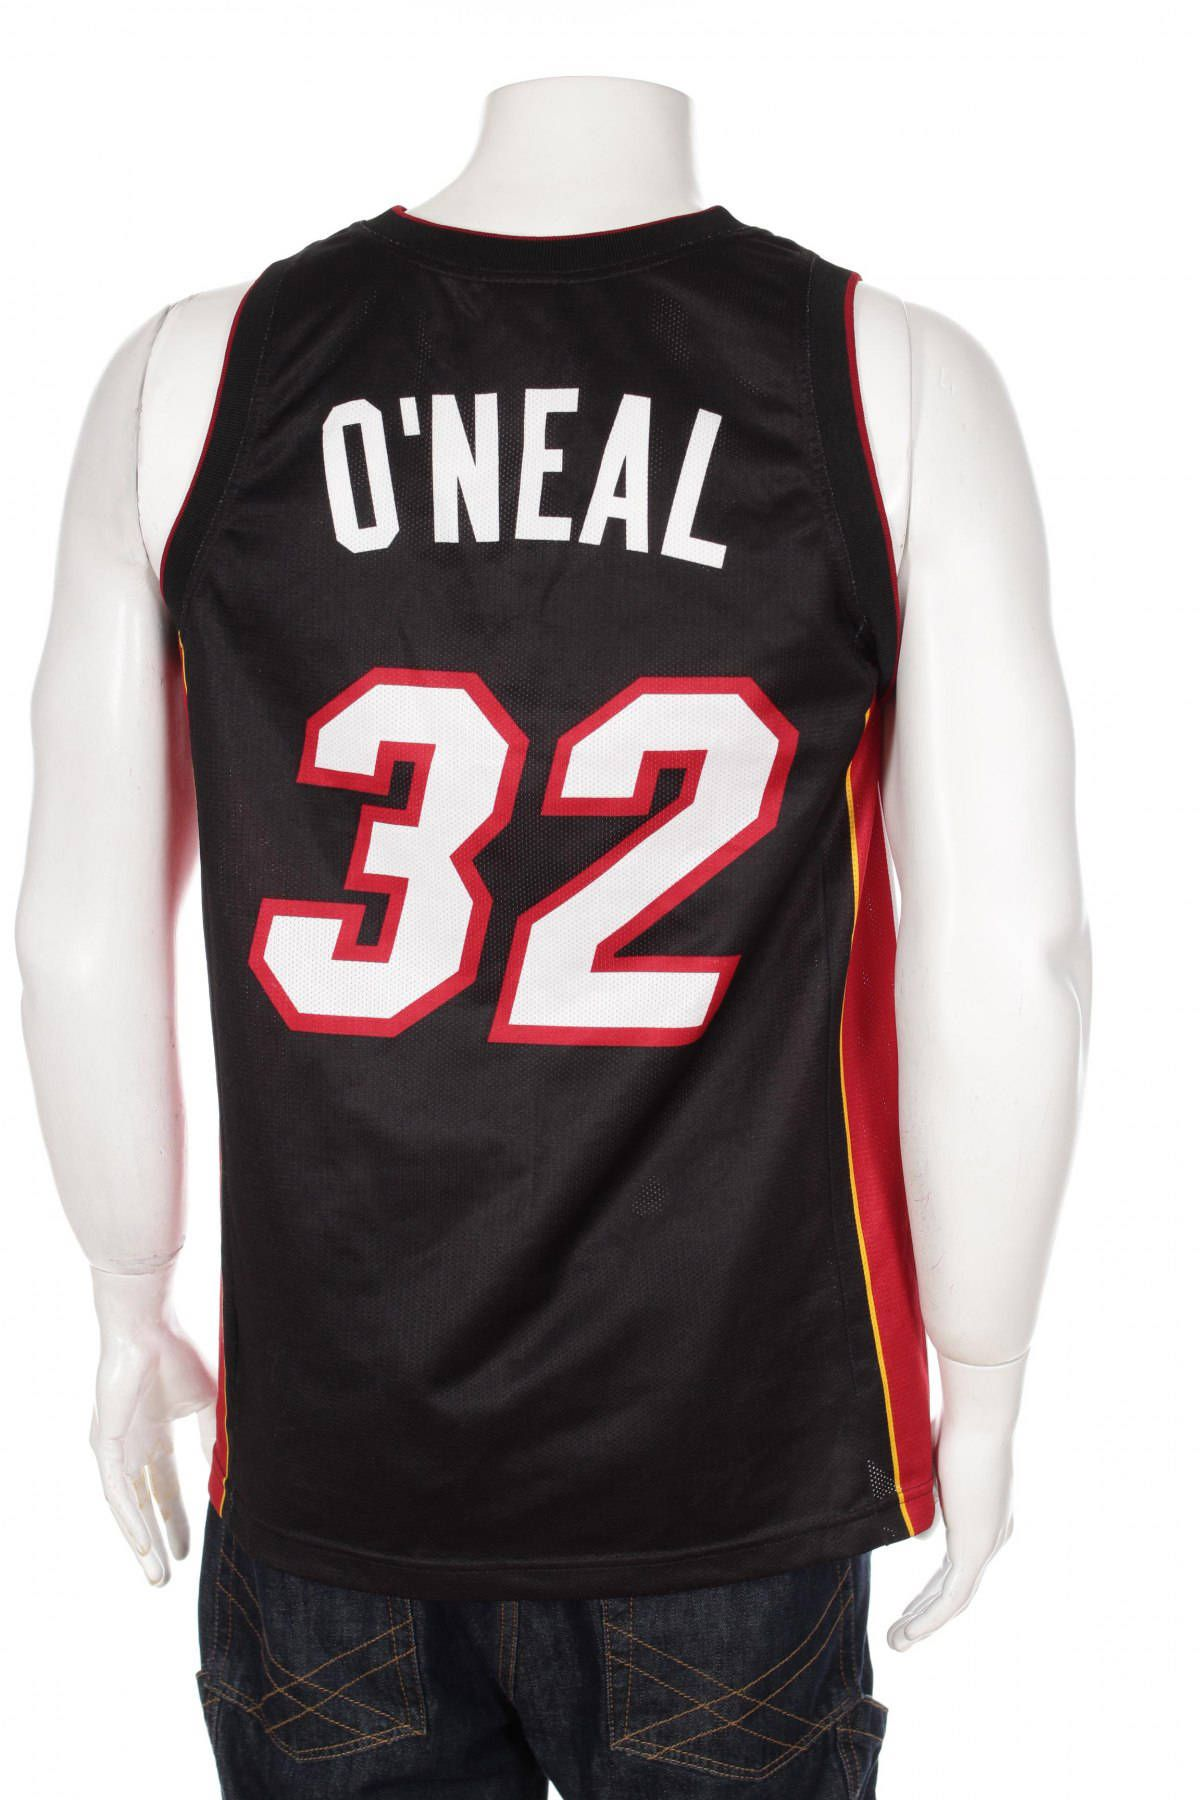 Rare Vintage Champion Shaquille O Neal  32 Miami Heat NBA Jersey Size 40  (M) by VapeoVintage on Etsy 139ff3466